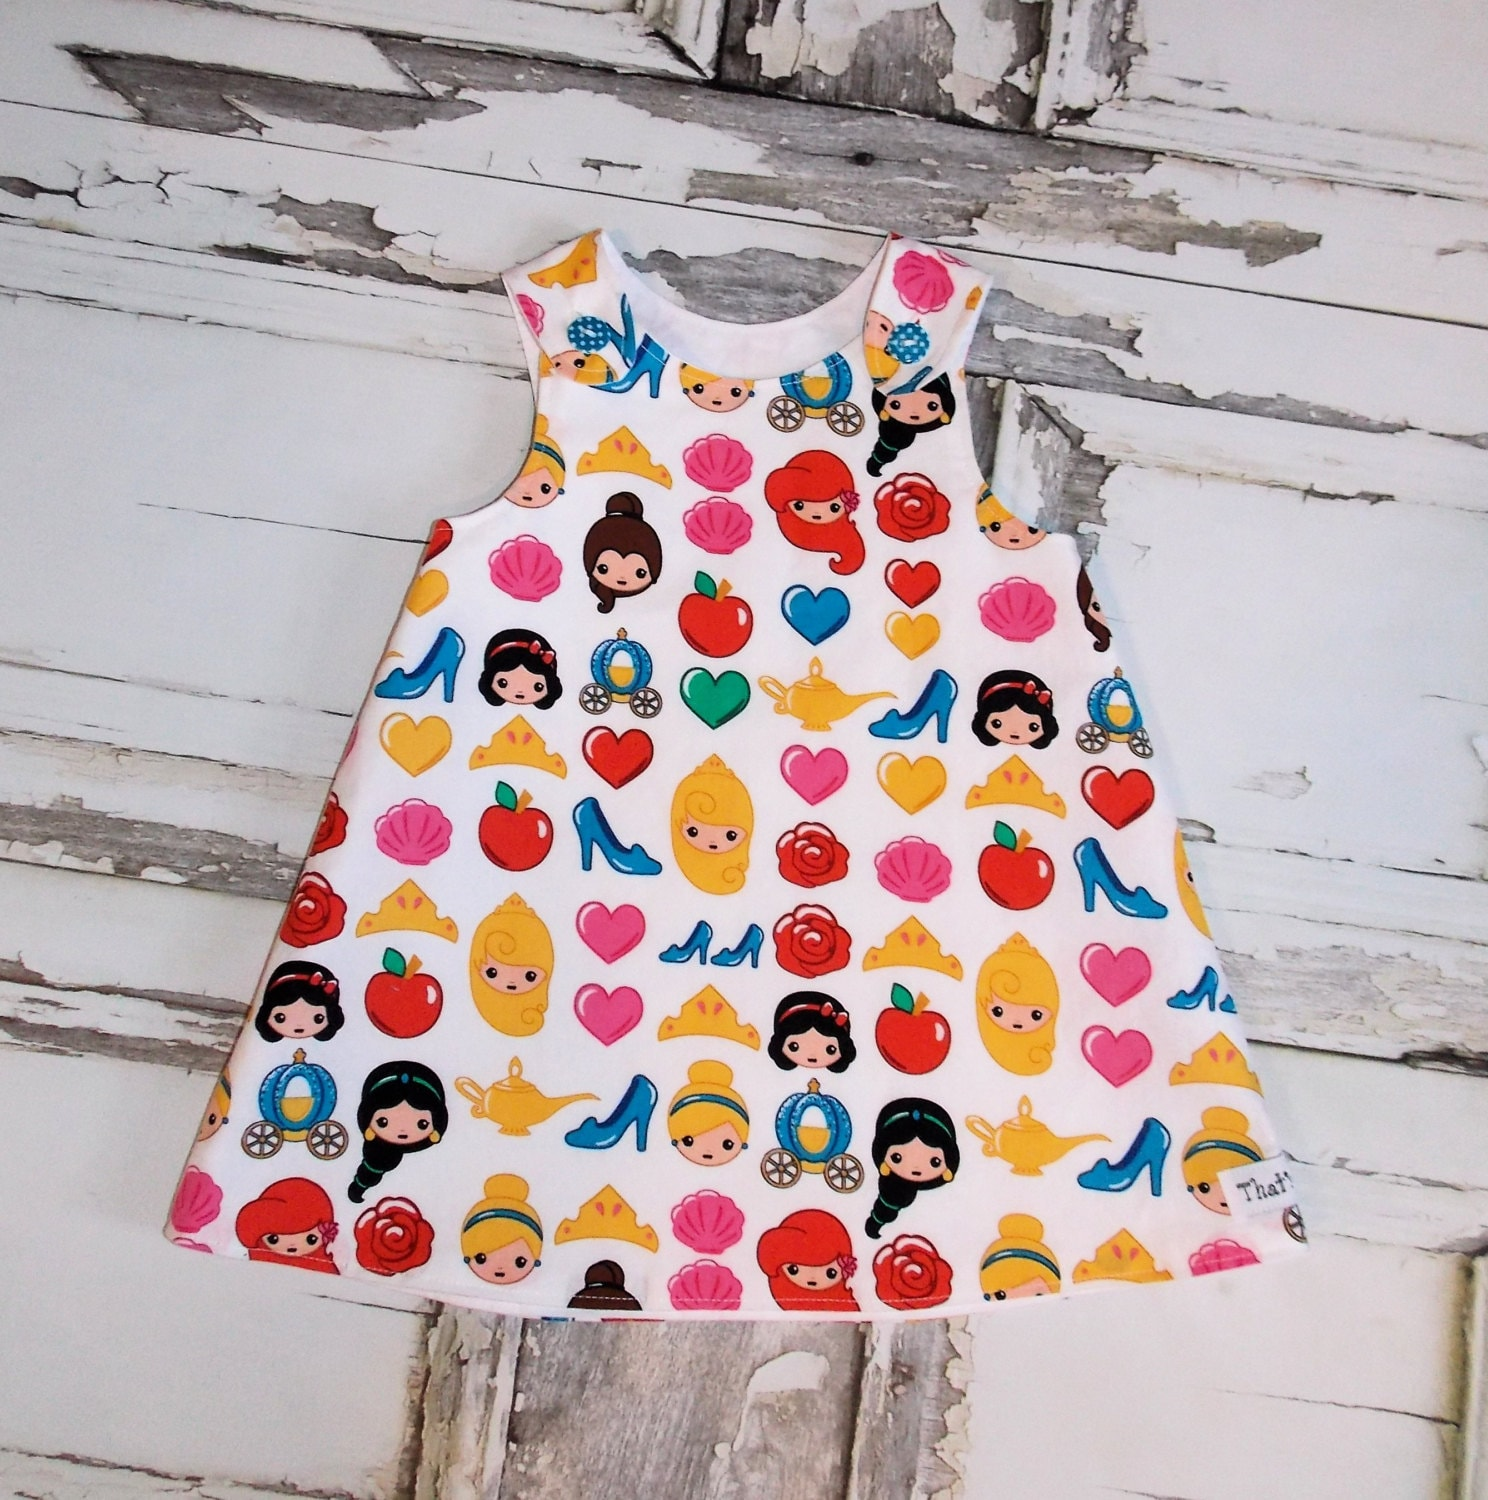 Cinderella Princess Character Dress Child 3t 4t 5 6 7: Disney Emoji Princess Cuties Aline Dress Sz 2T 3T 4T 5 6 7